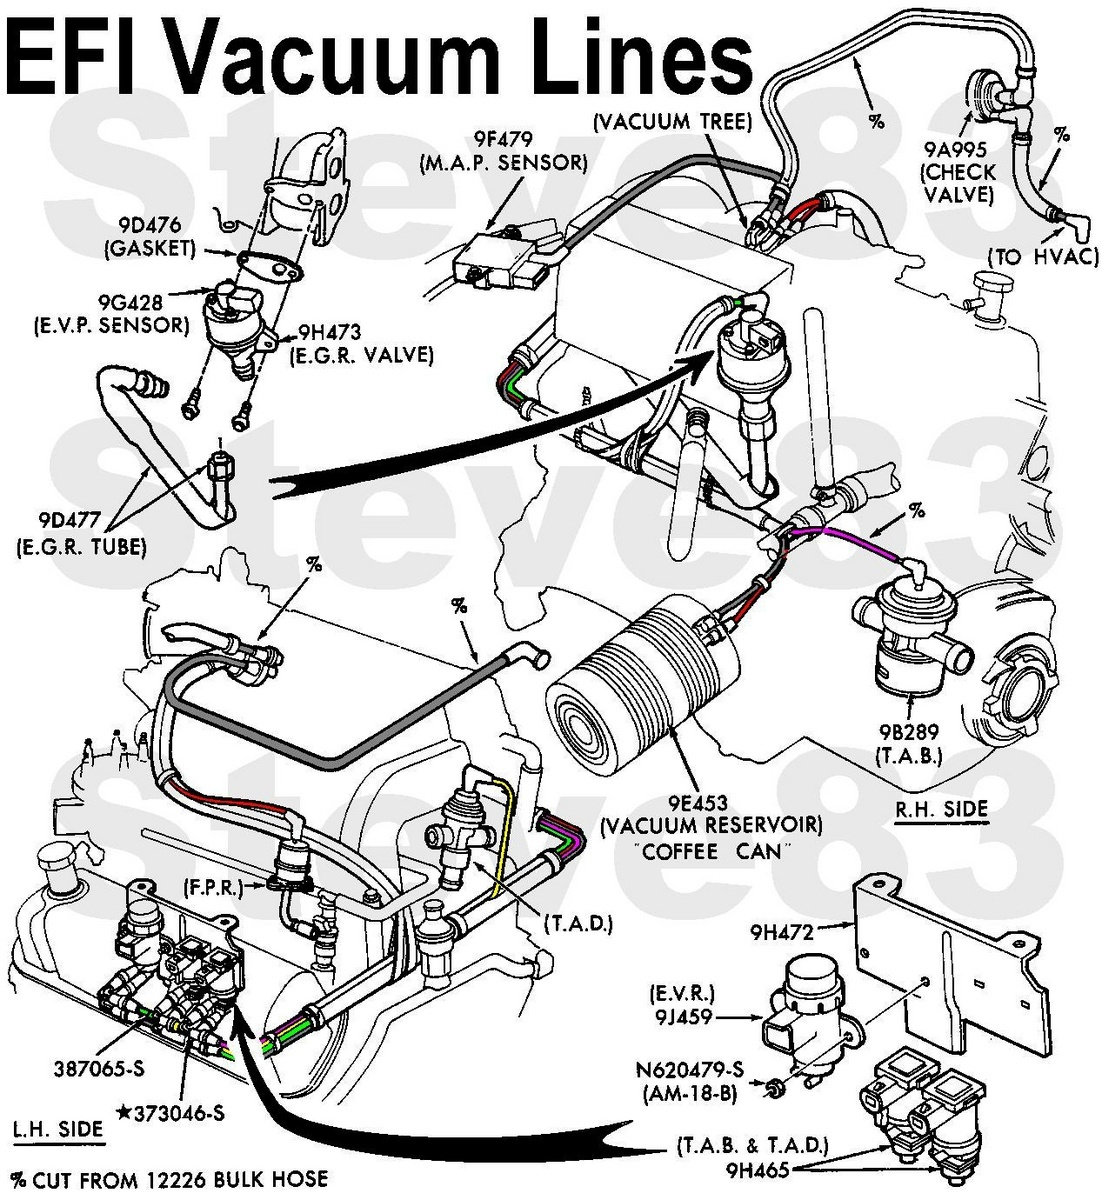 93 ford ranger radio wiring diagram with 1990 Ford F 150 Engine Diagram on 92 Mustang Steering Column Wiring Diagram additionally Showthread also 4961n Ford F150 Pickup Super Cab 2001 Ford F150 Supercab likewise 1997 Honda Civic Cooling Fan Wiring Circuit Diagram likewise 1049628 87 B2 Electrical Schematic.